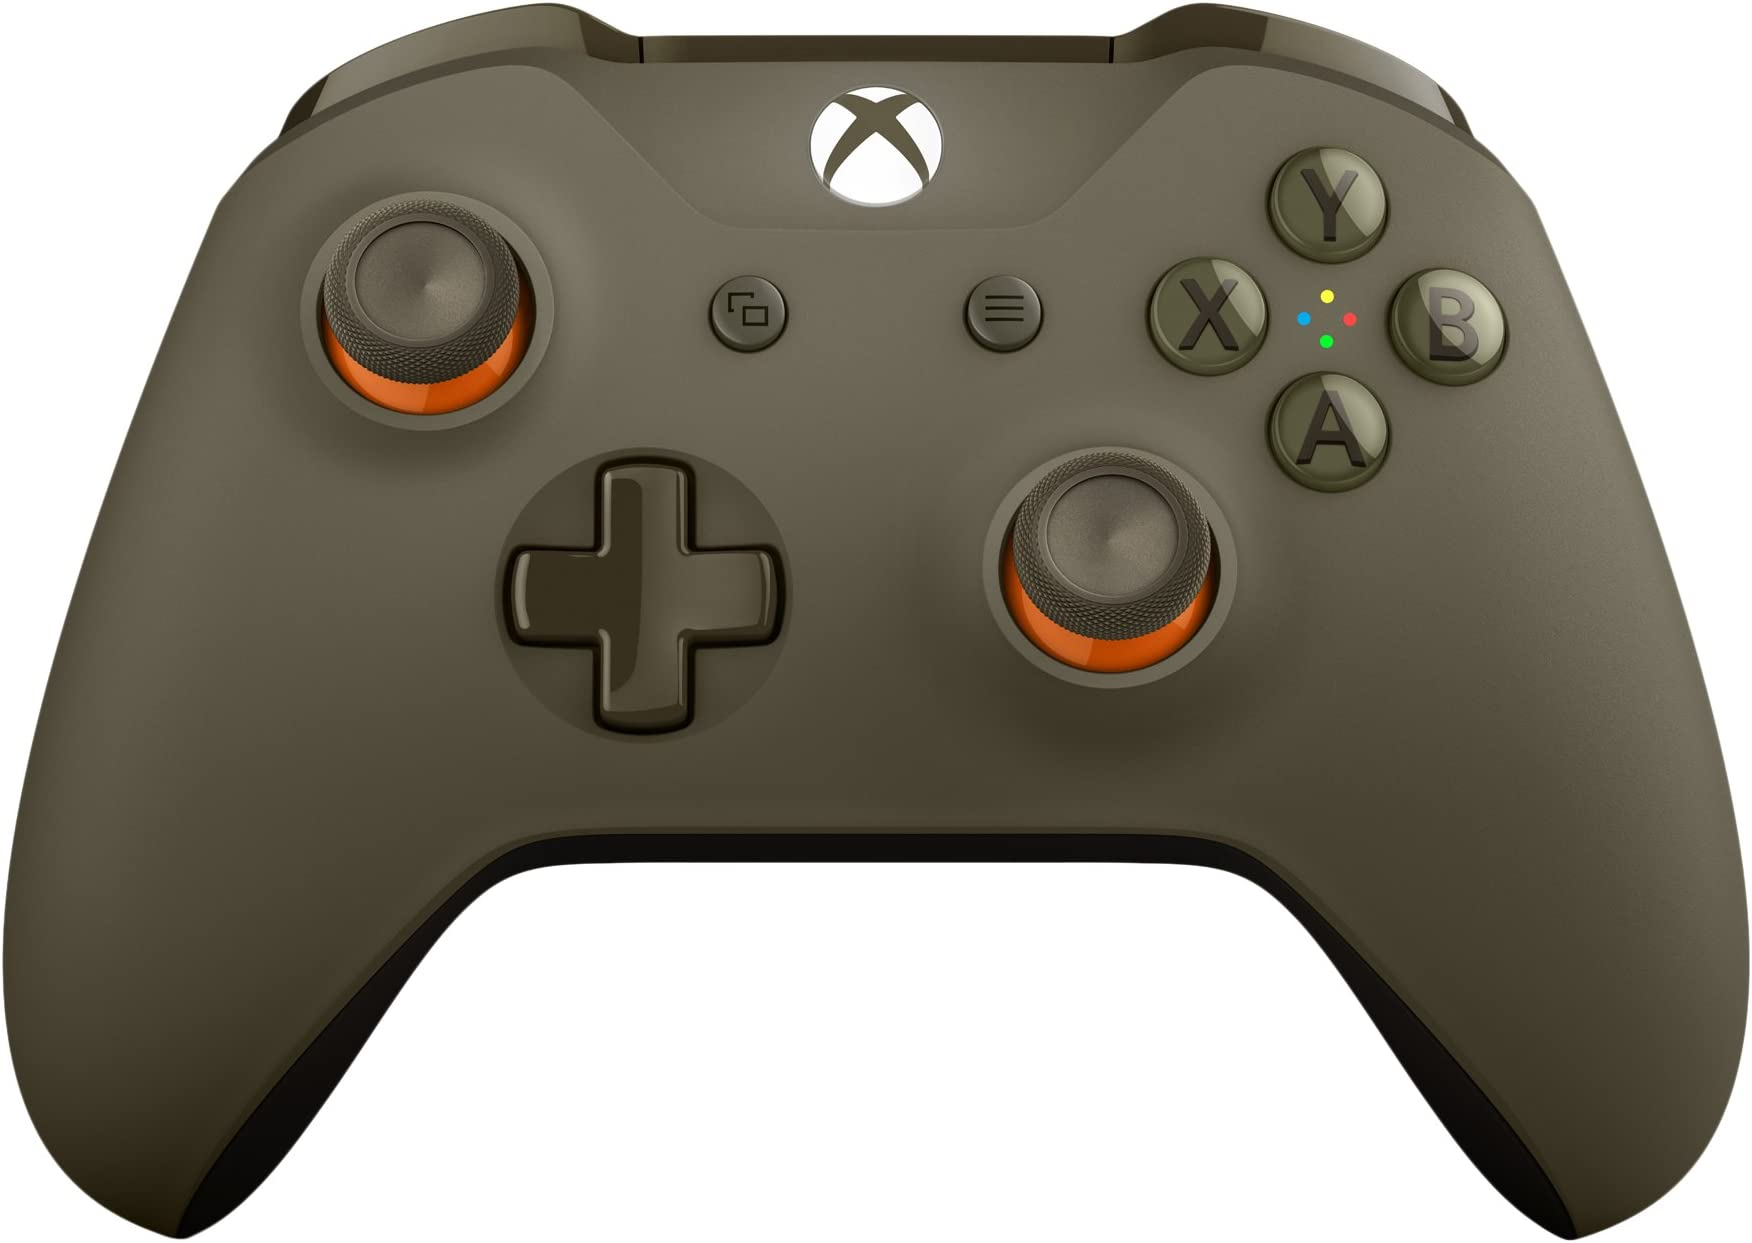 Light flashing on xbox 360 wireless controller wire center amazon com xbox wireless controller green orange video games rh amazon com xbox 360 wireless controller ccuart Images